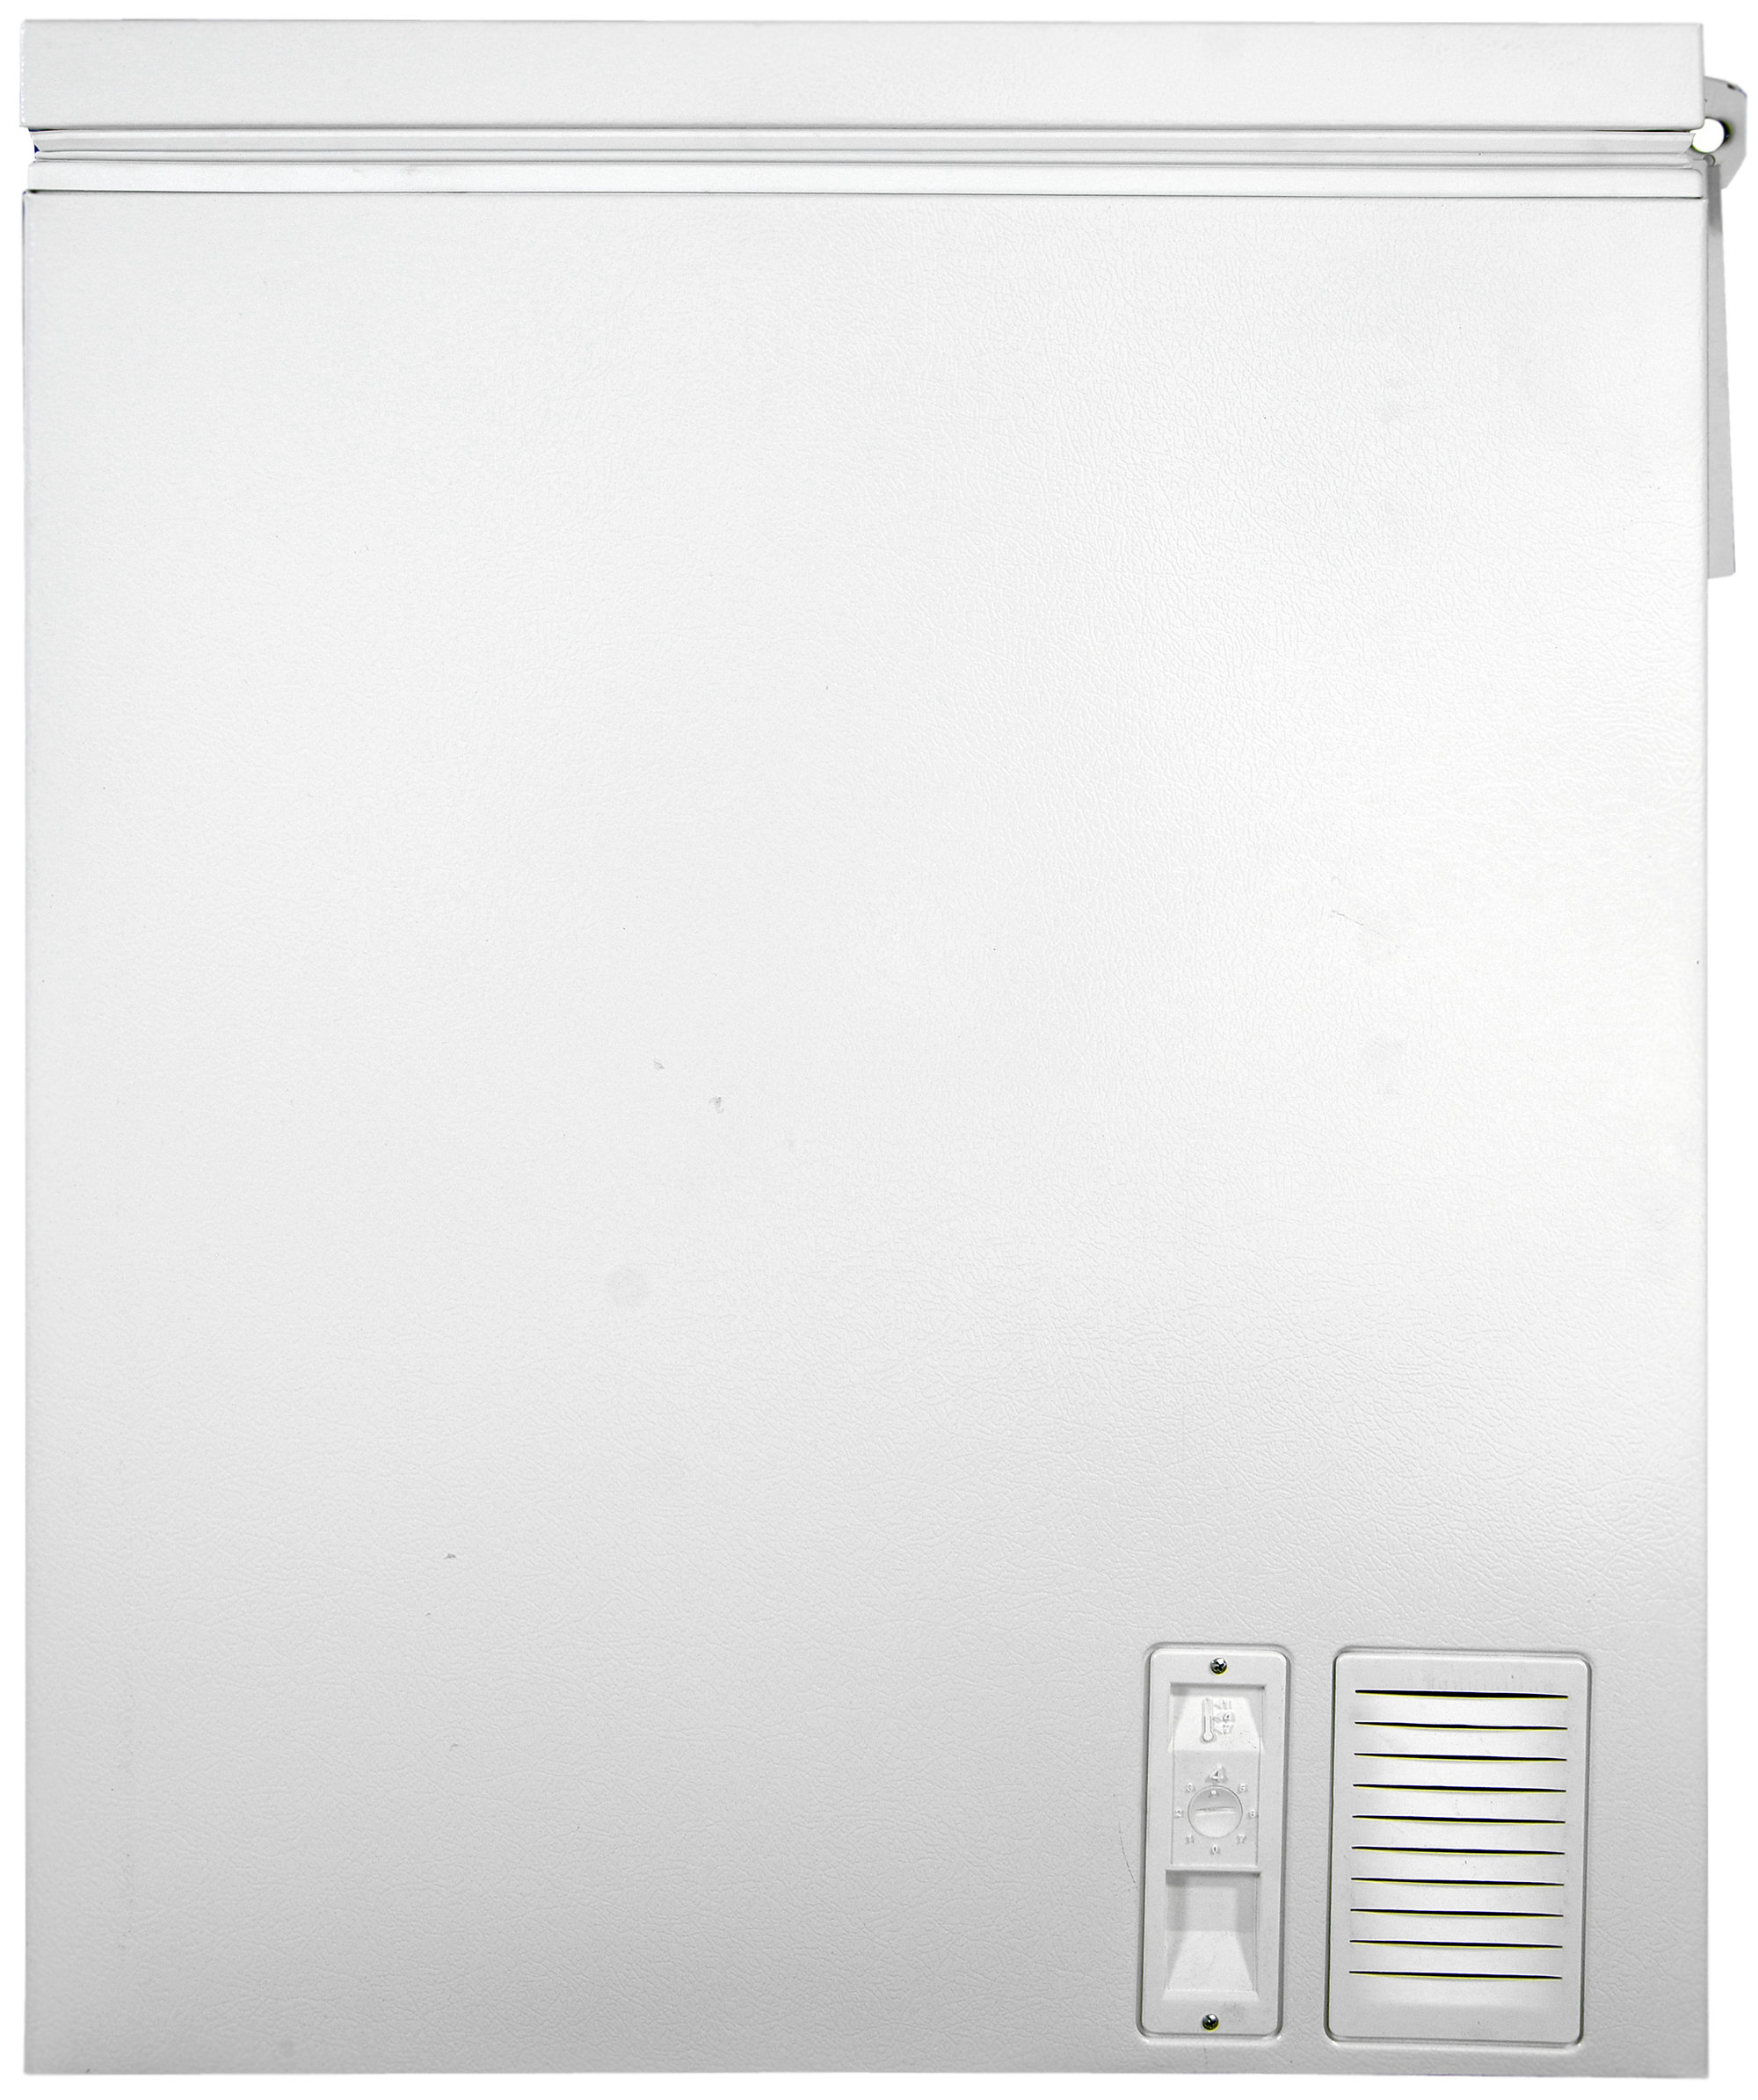 The Whirlpool EH151FXTQ's controls are located on the right side of the freezer, next to a small air vent.